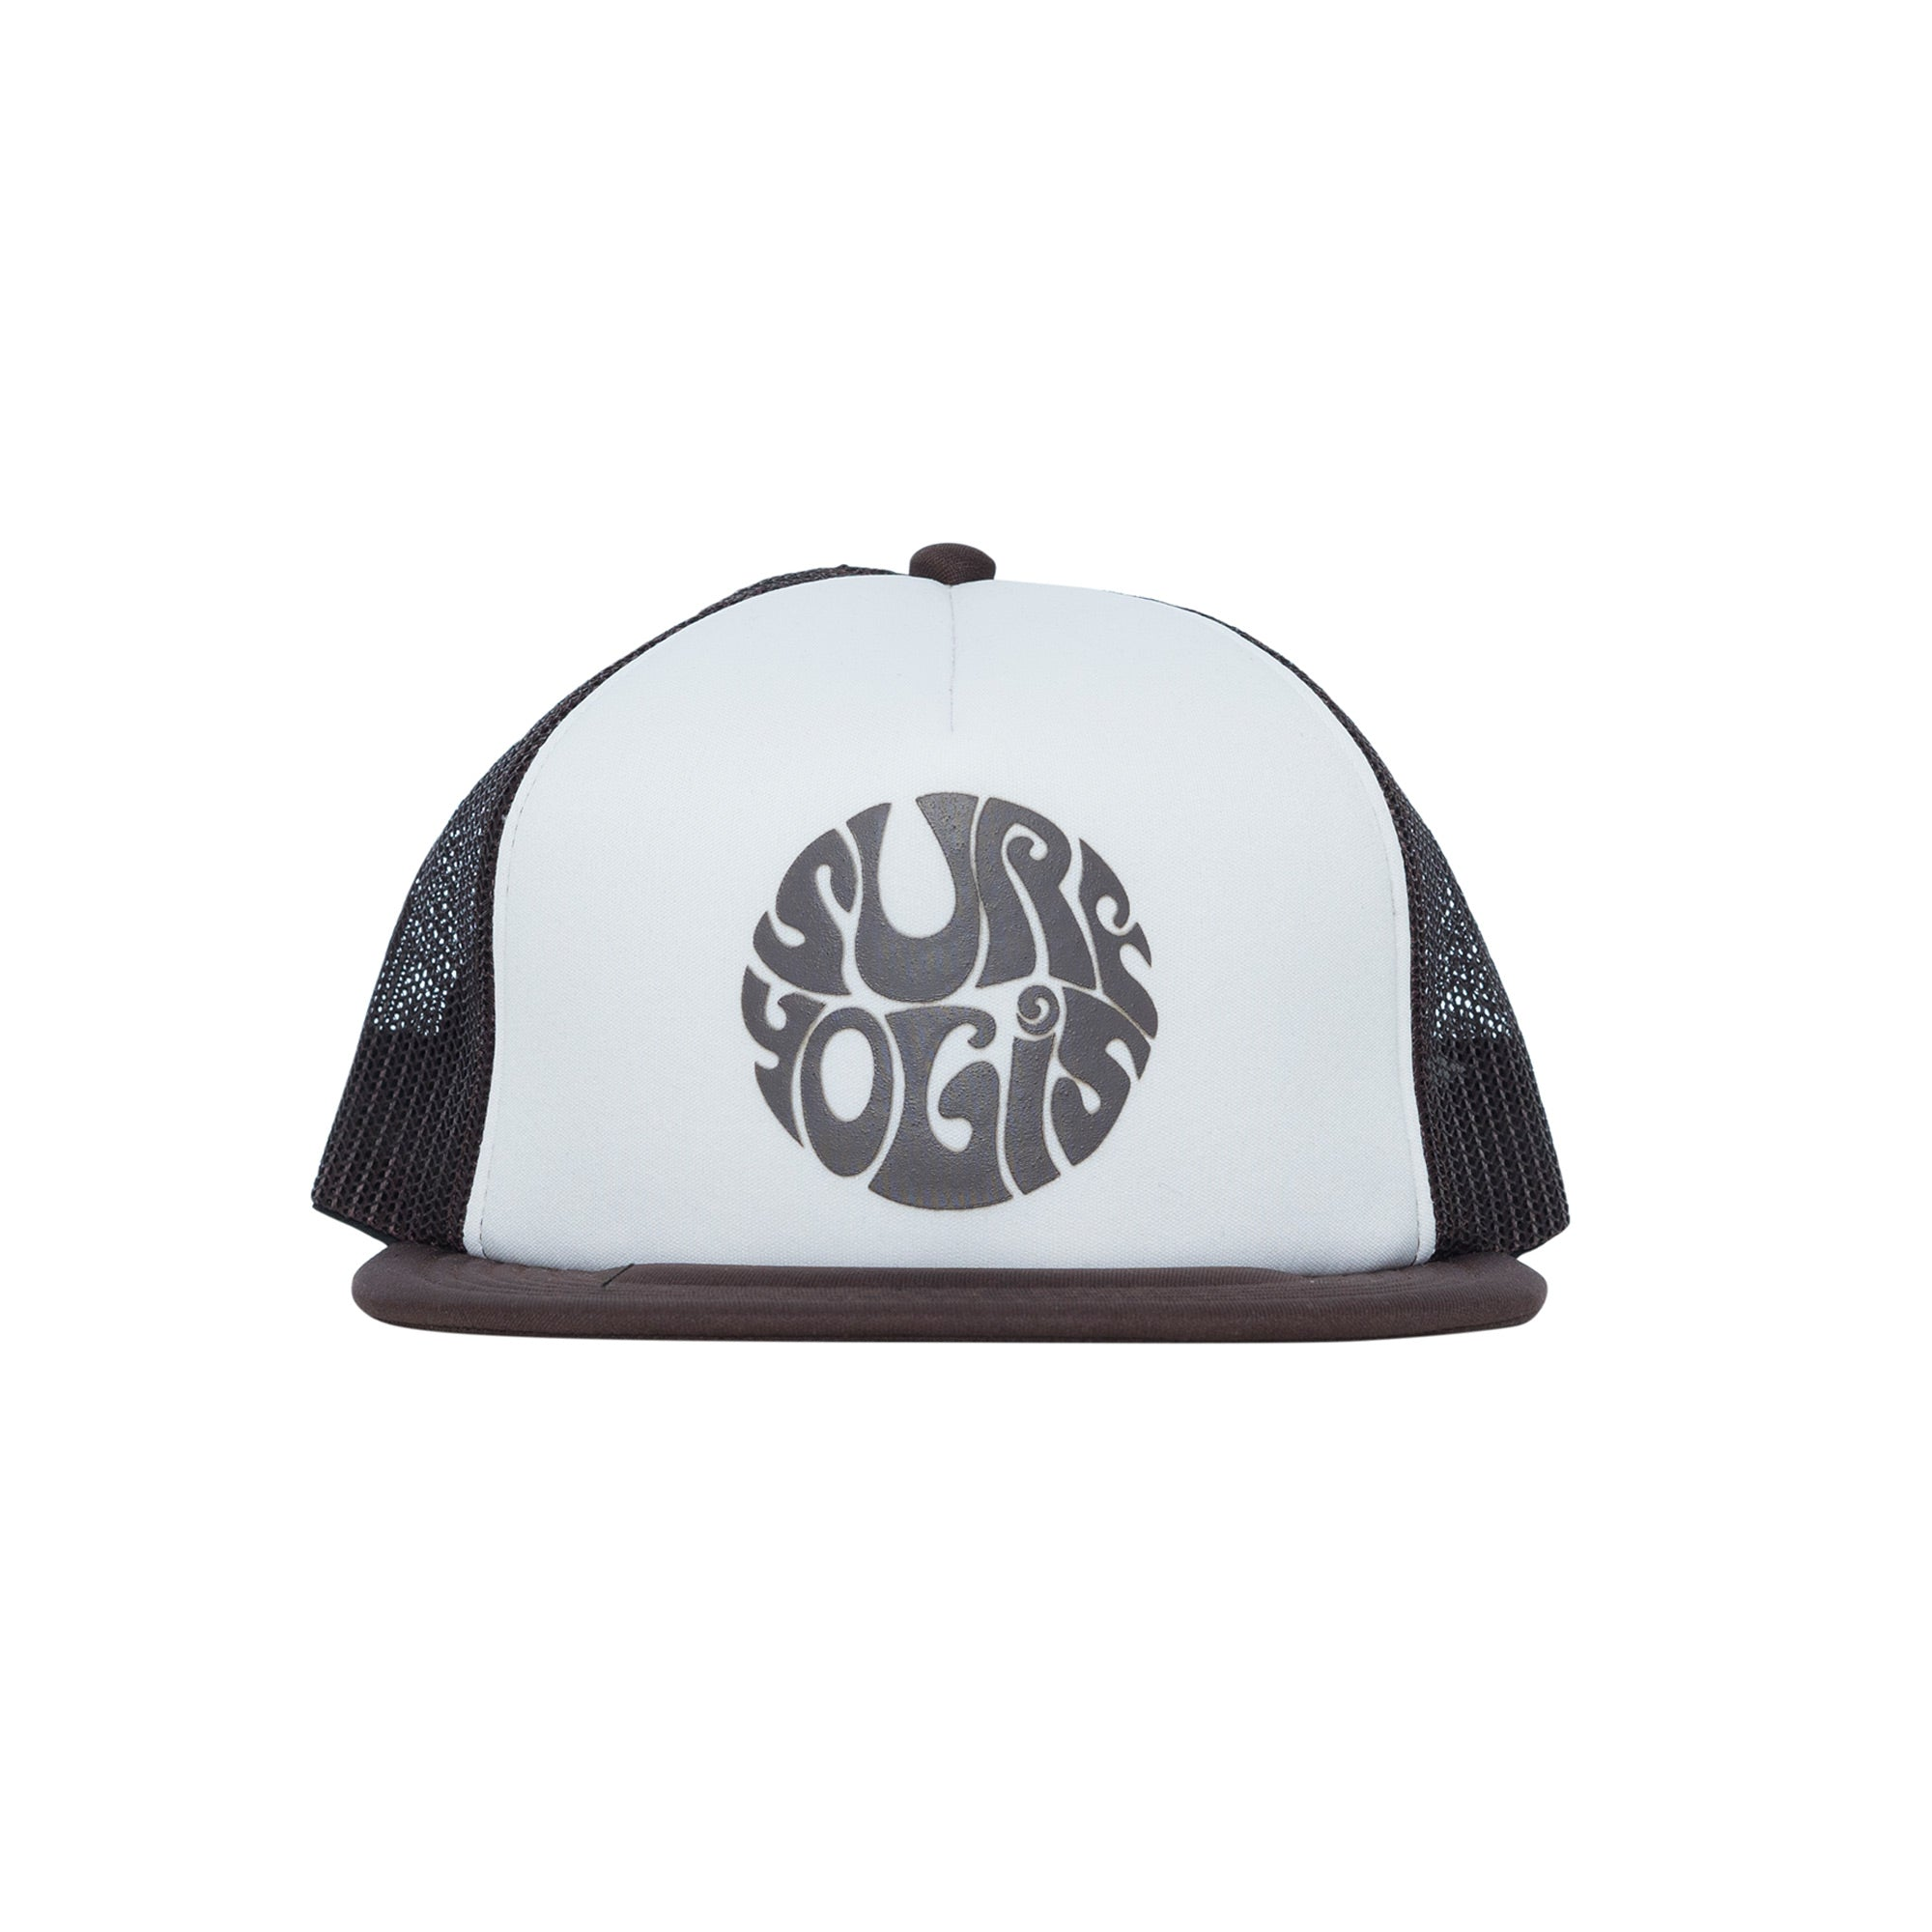 White panel trucker hat. Brown logo on centre front panel. Brown mesh.